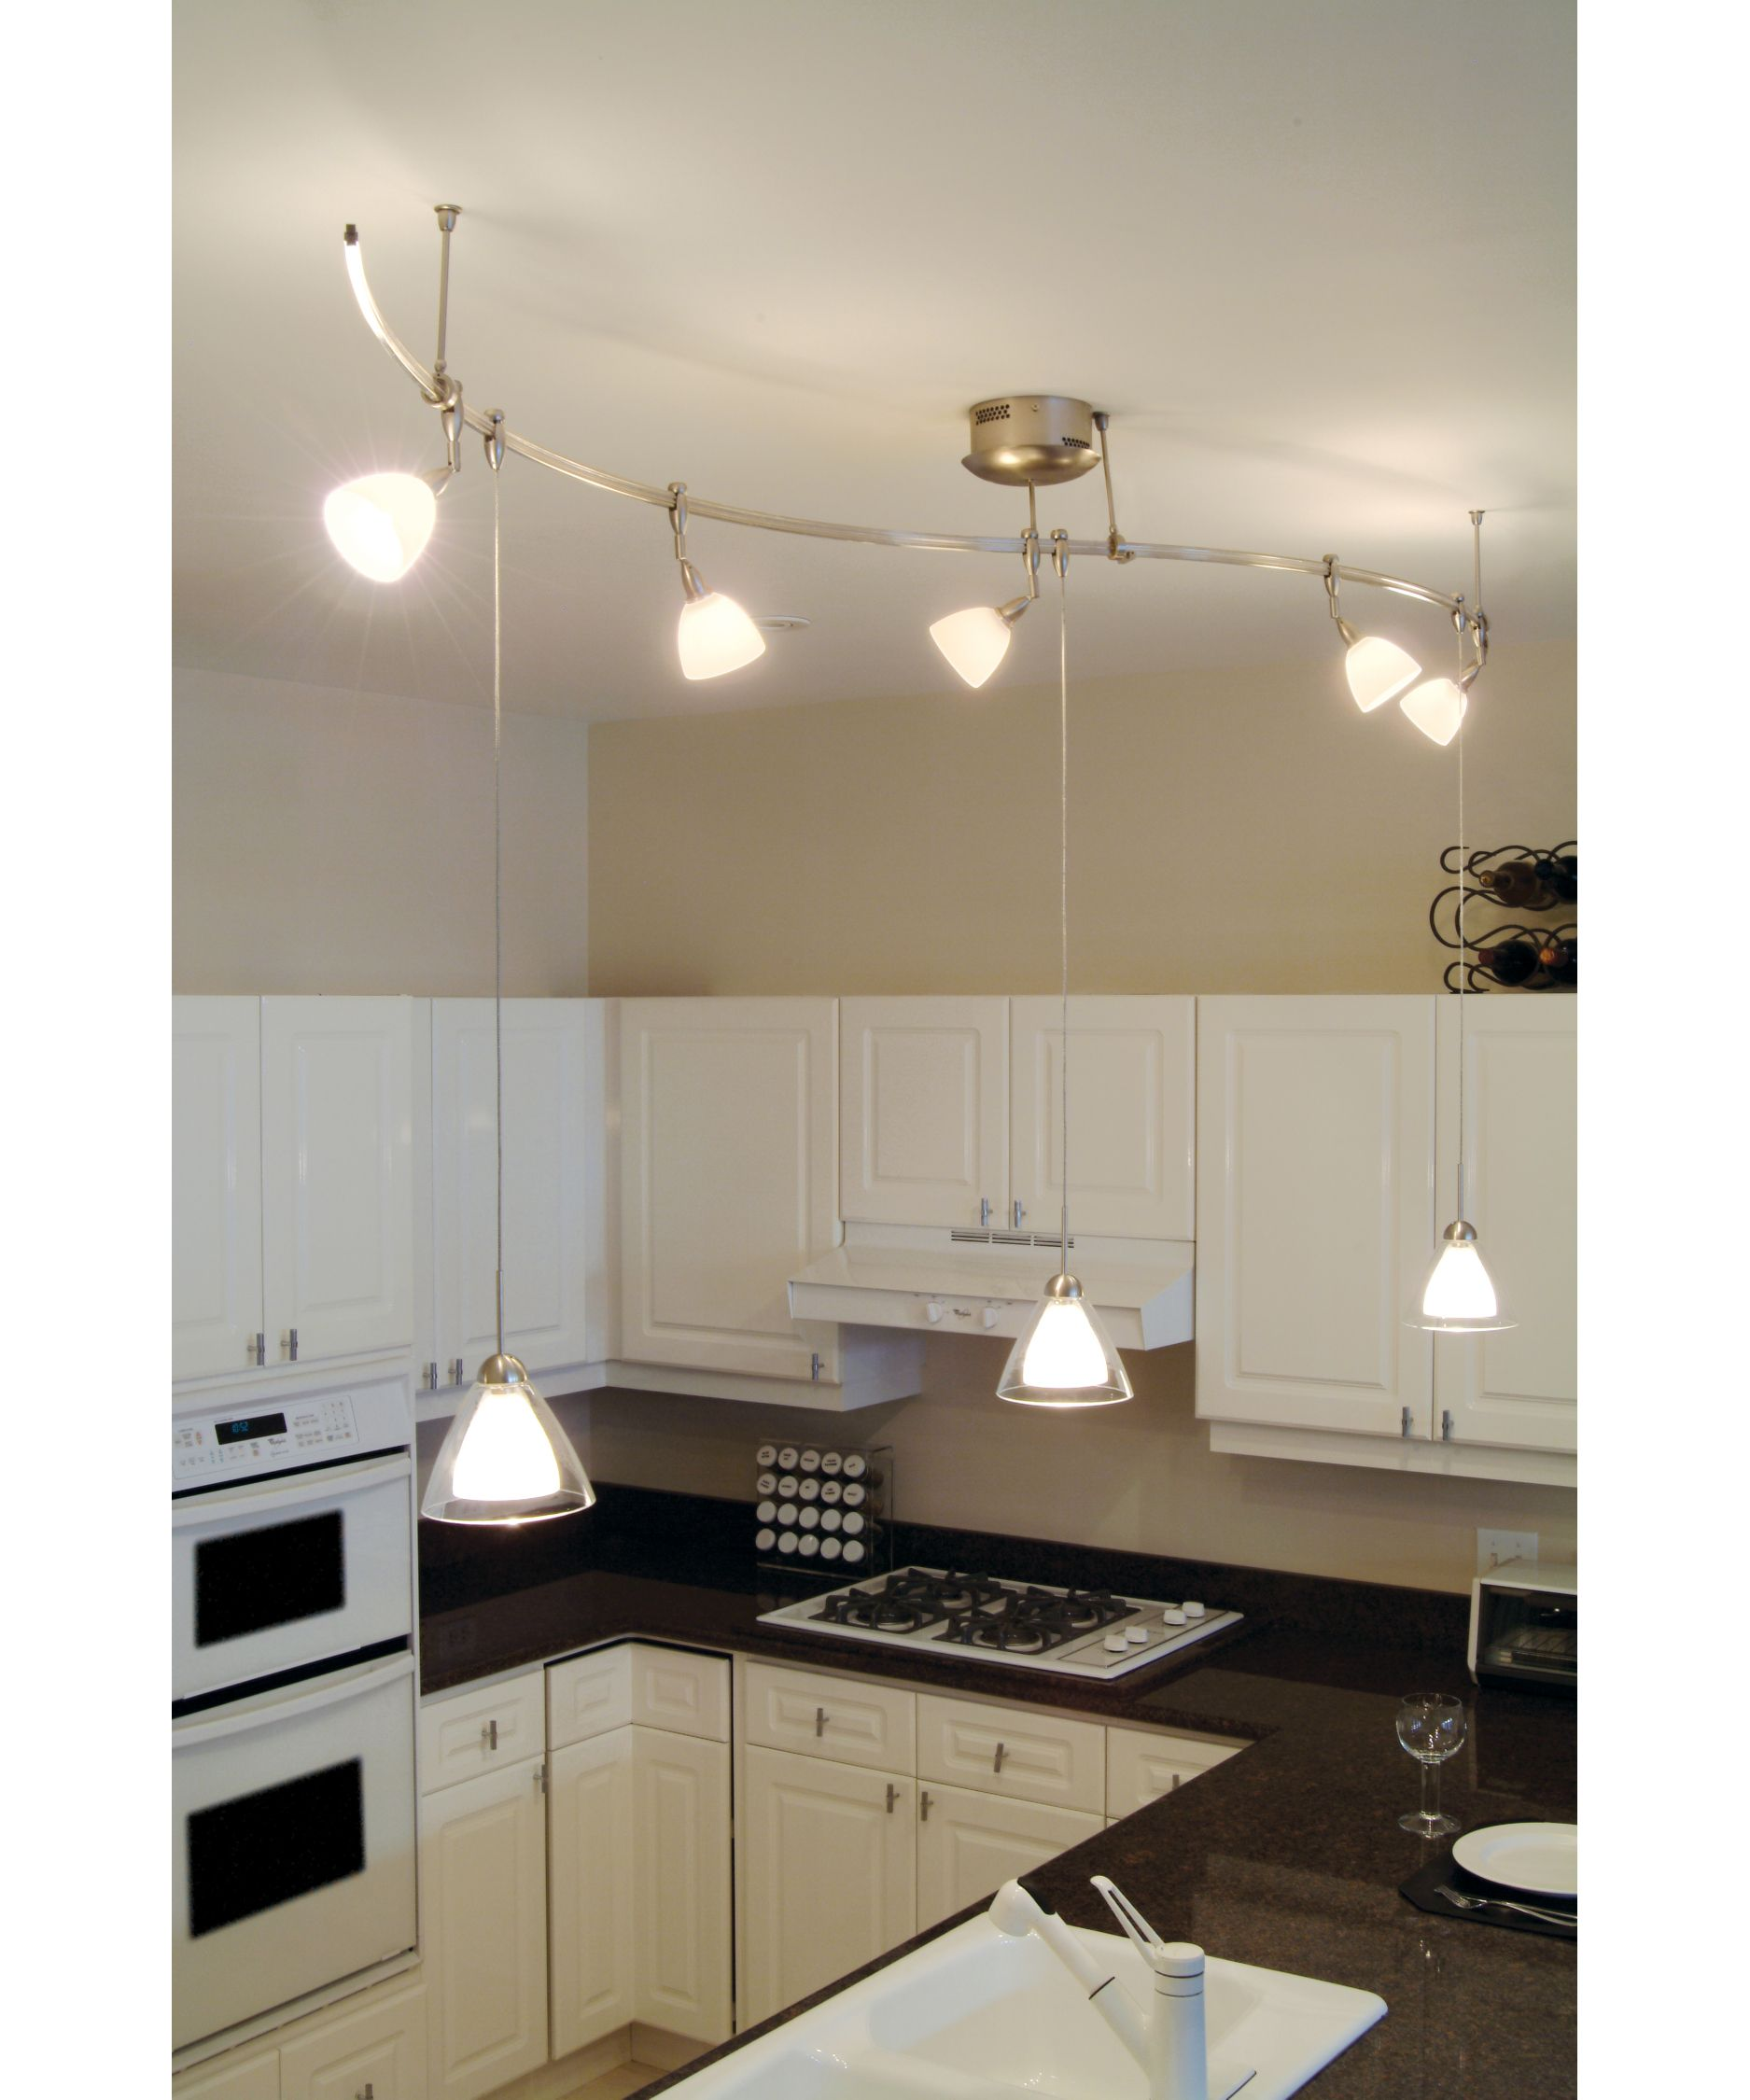 Kitchen Pendant Lighting Over Sink: Kitchen Track Light, Maybe One Hangs Down Over Sink.